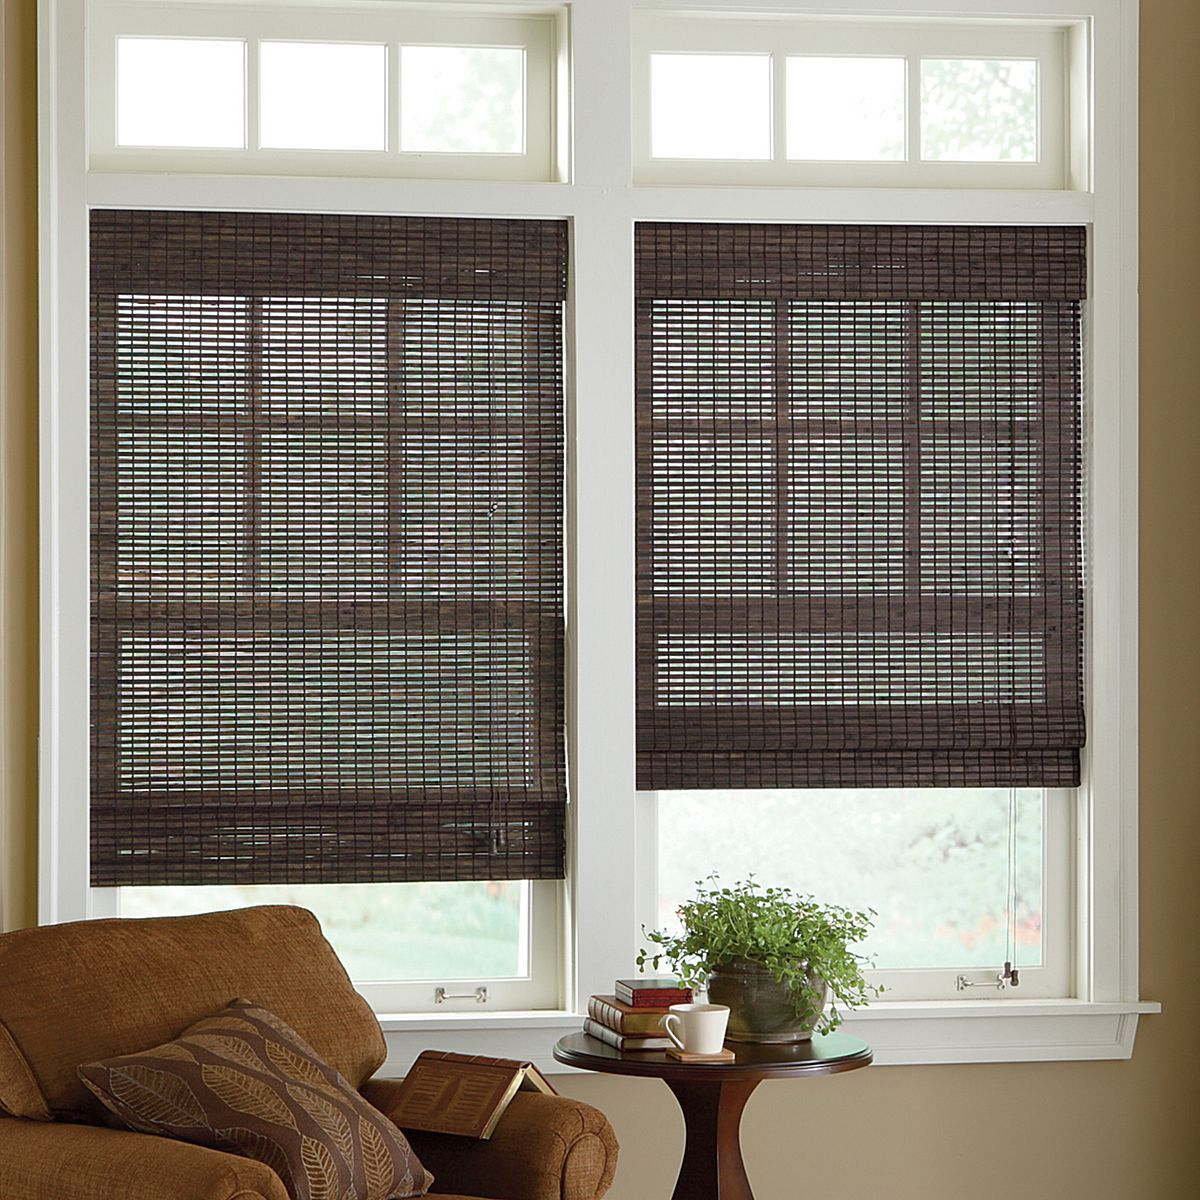 Where To Buy Roman Shades Dark Bamboo Blinds Kitchen And Family Room I Like Windows